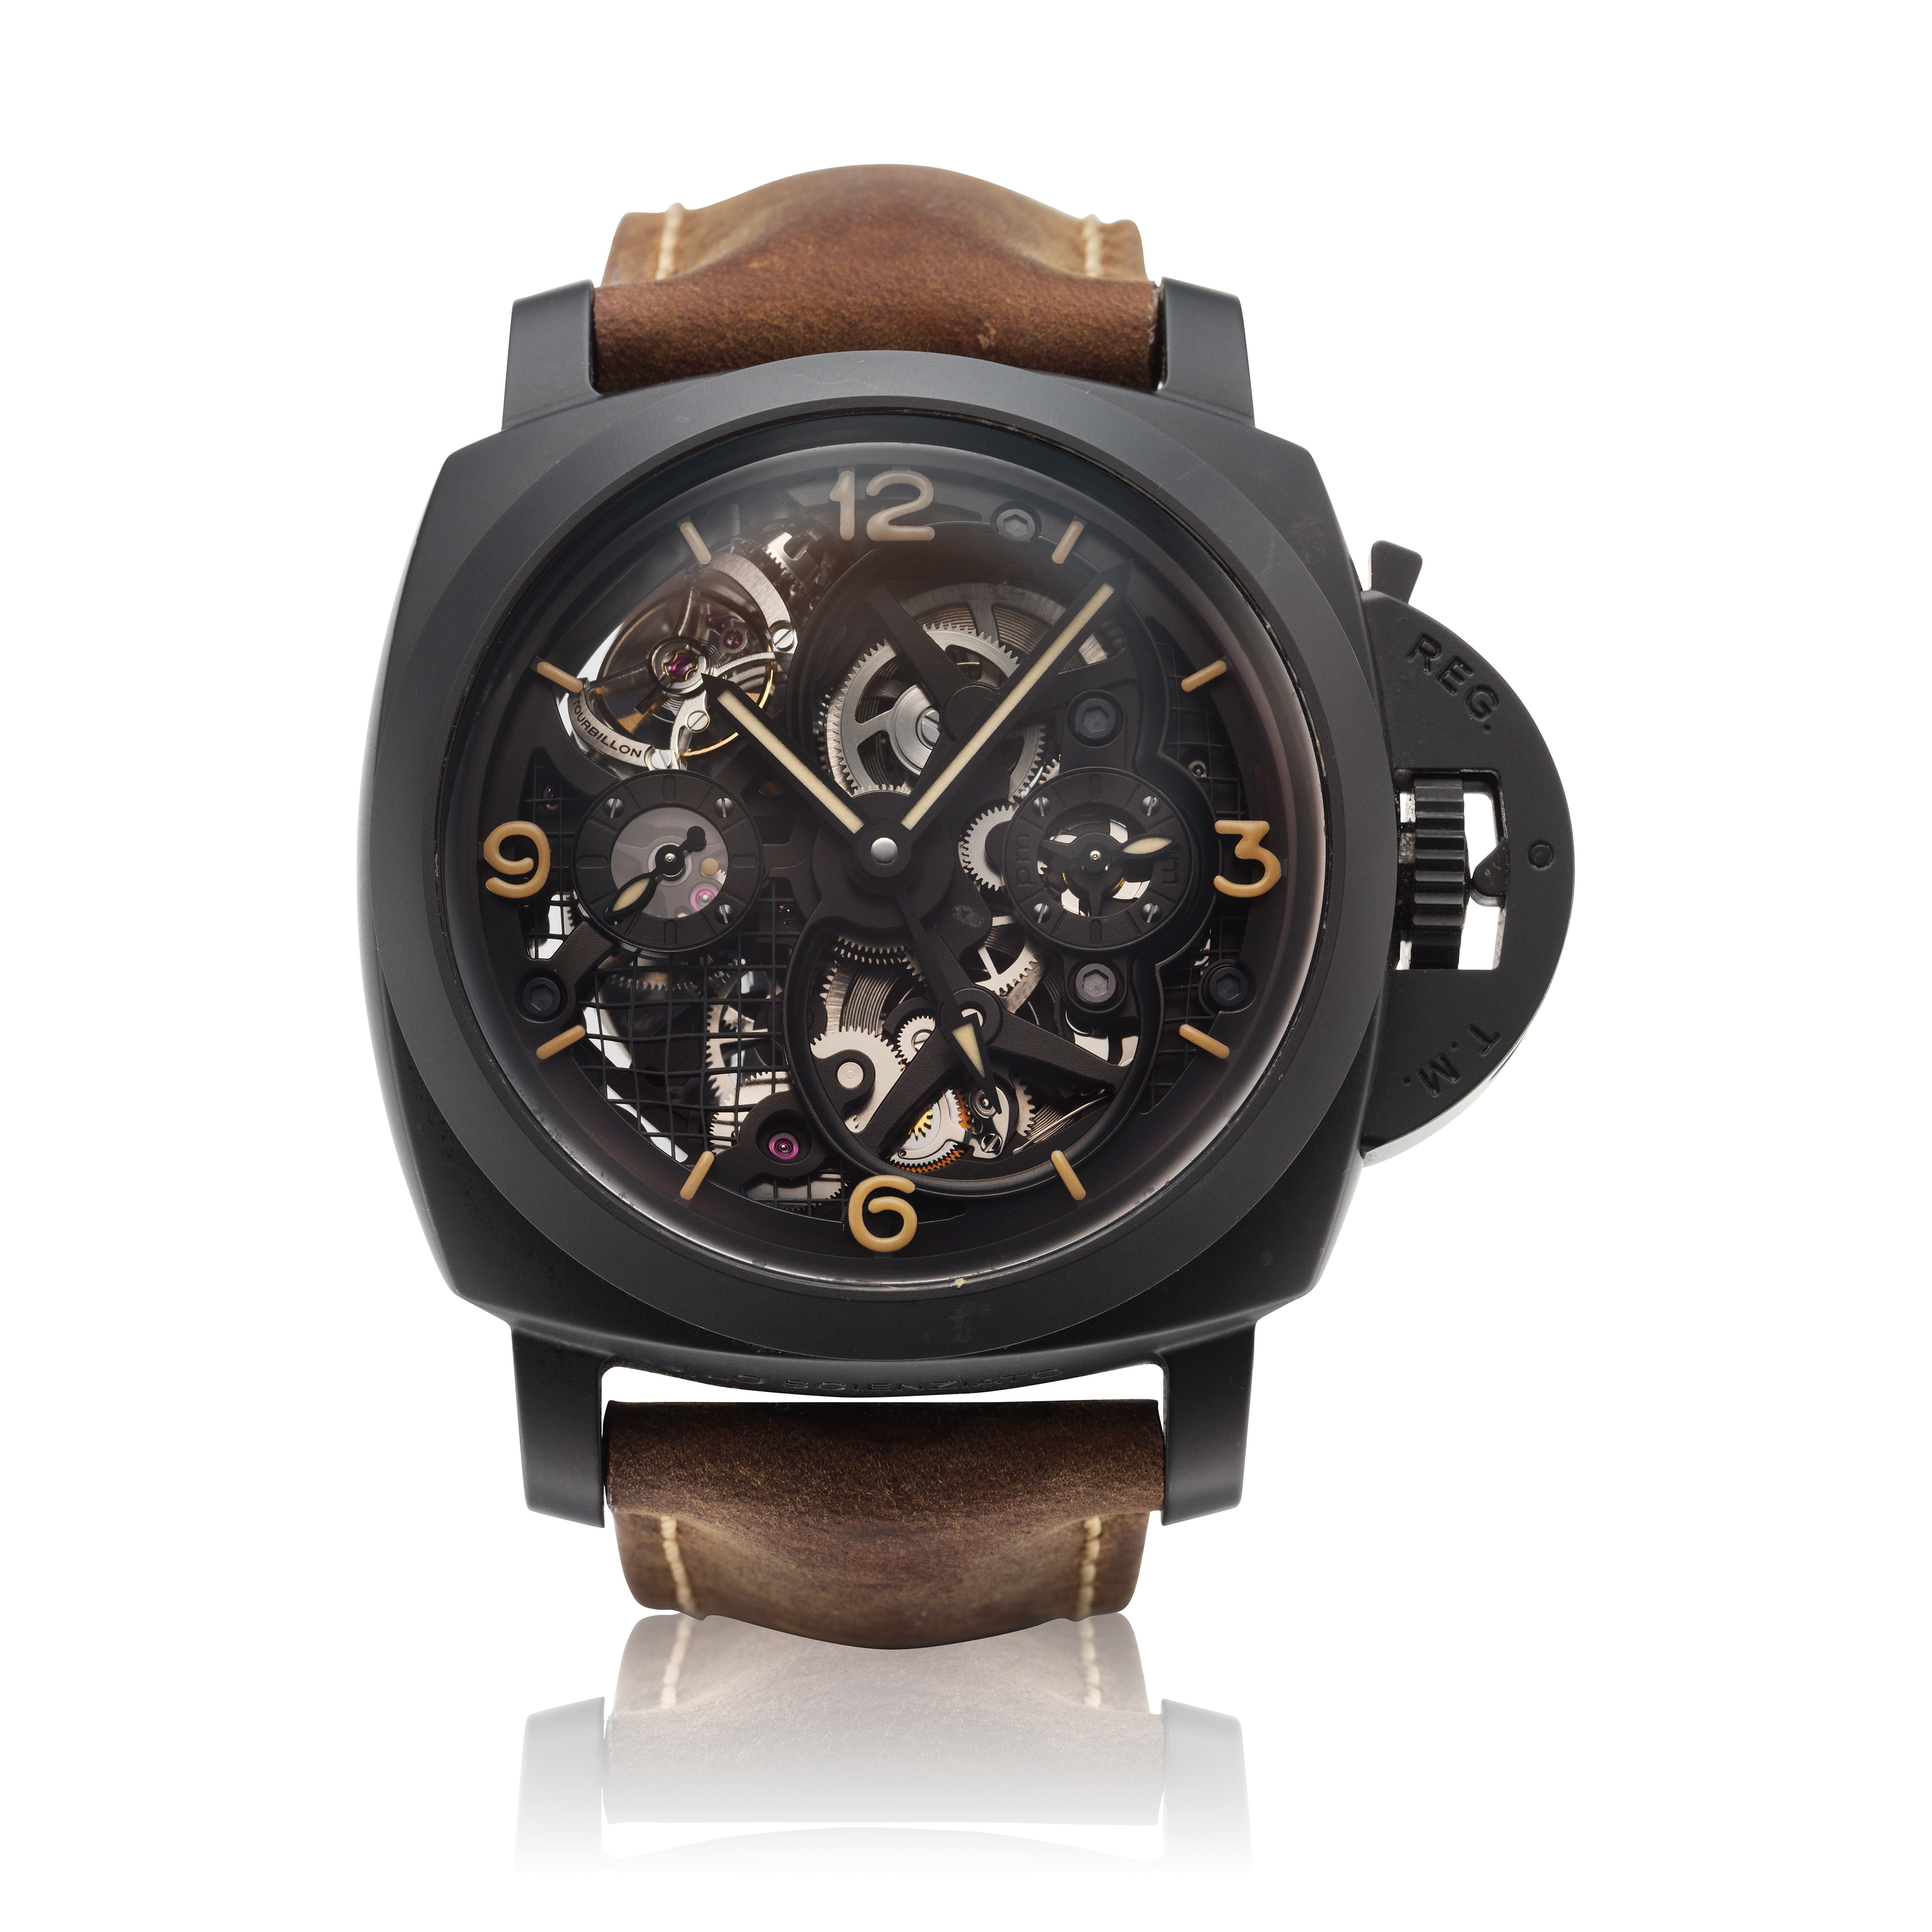 View full screen - View 1 of Lot 311. Reference PAM00528 Luminor 1950 Tourbillon GMT  A limited edition black ceramic and titanium skeletonized tourbillon dual time wristwatch, Circa 2014.